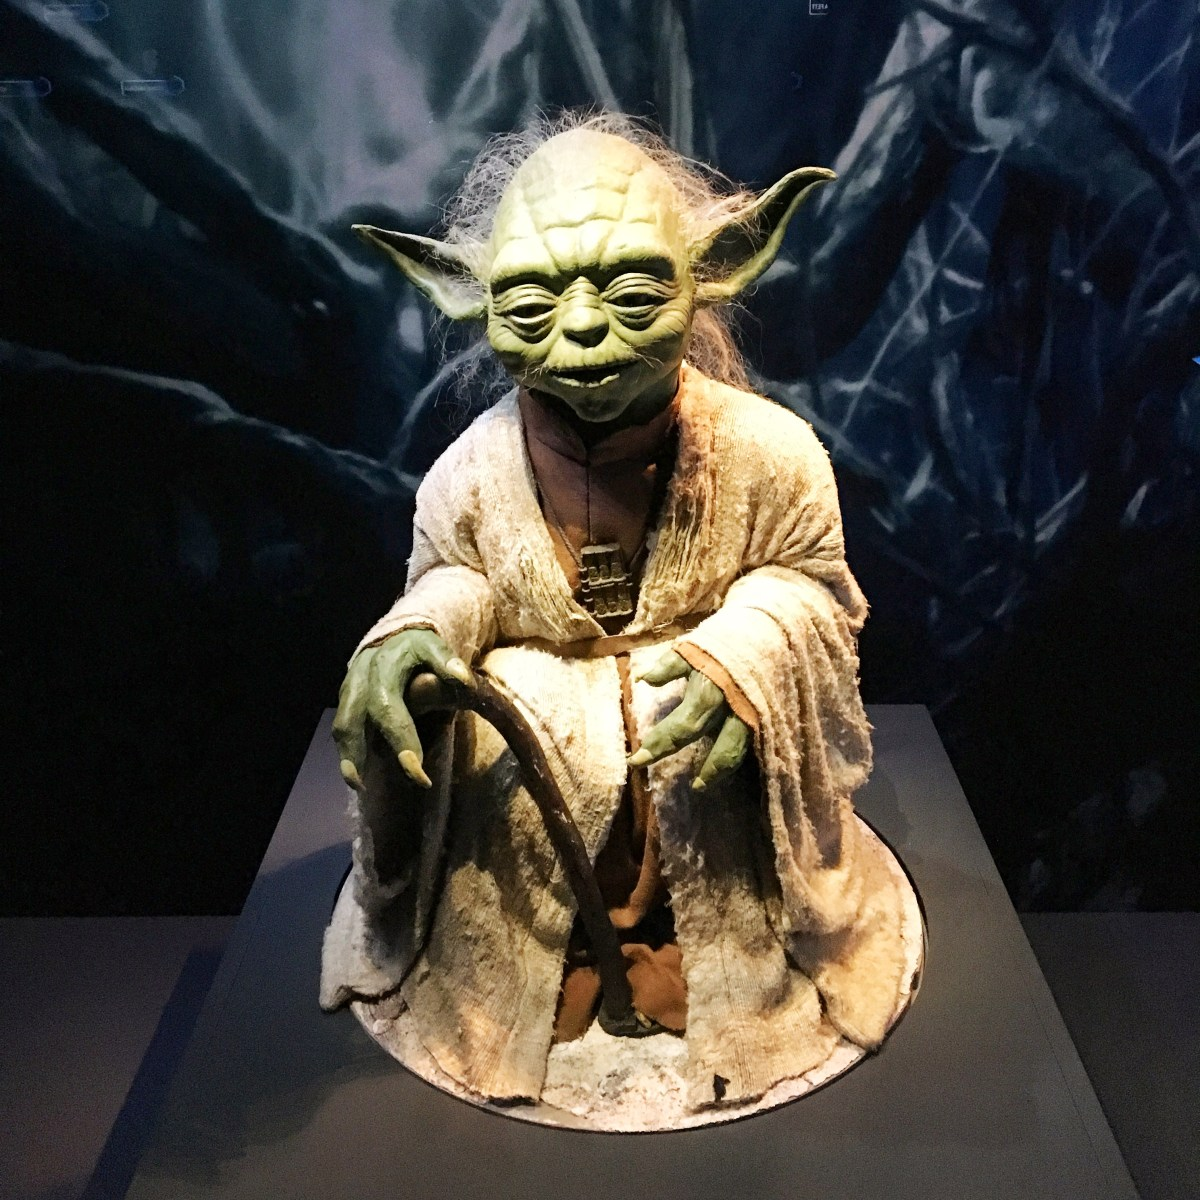 Star Wars & Rolling Stones Sydney Exhibitions - My NZ Herald Article + Top 50 Sydney Photos